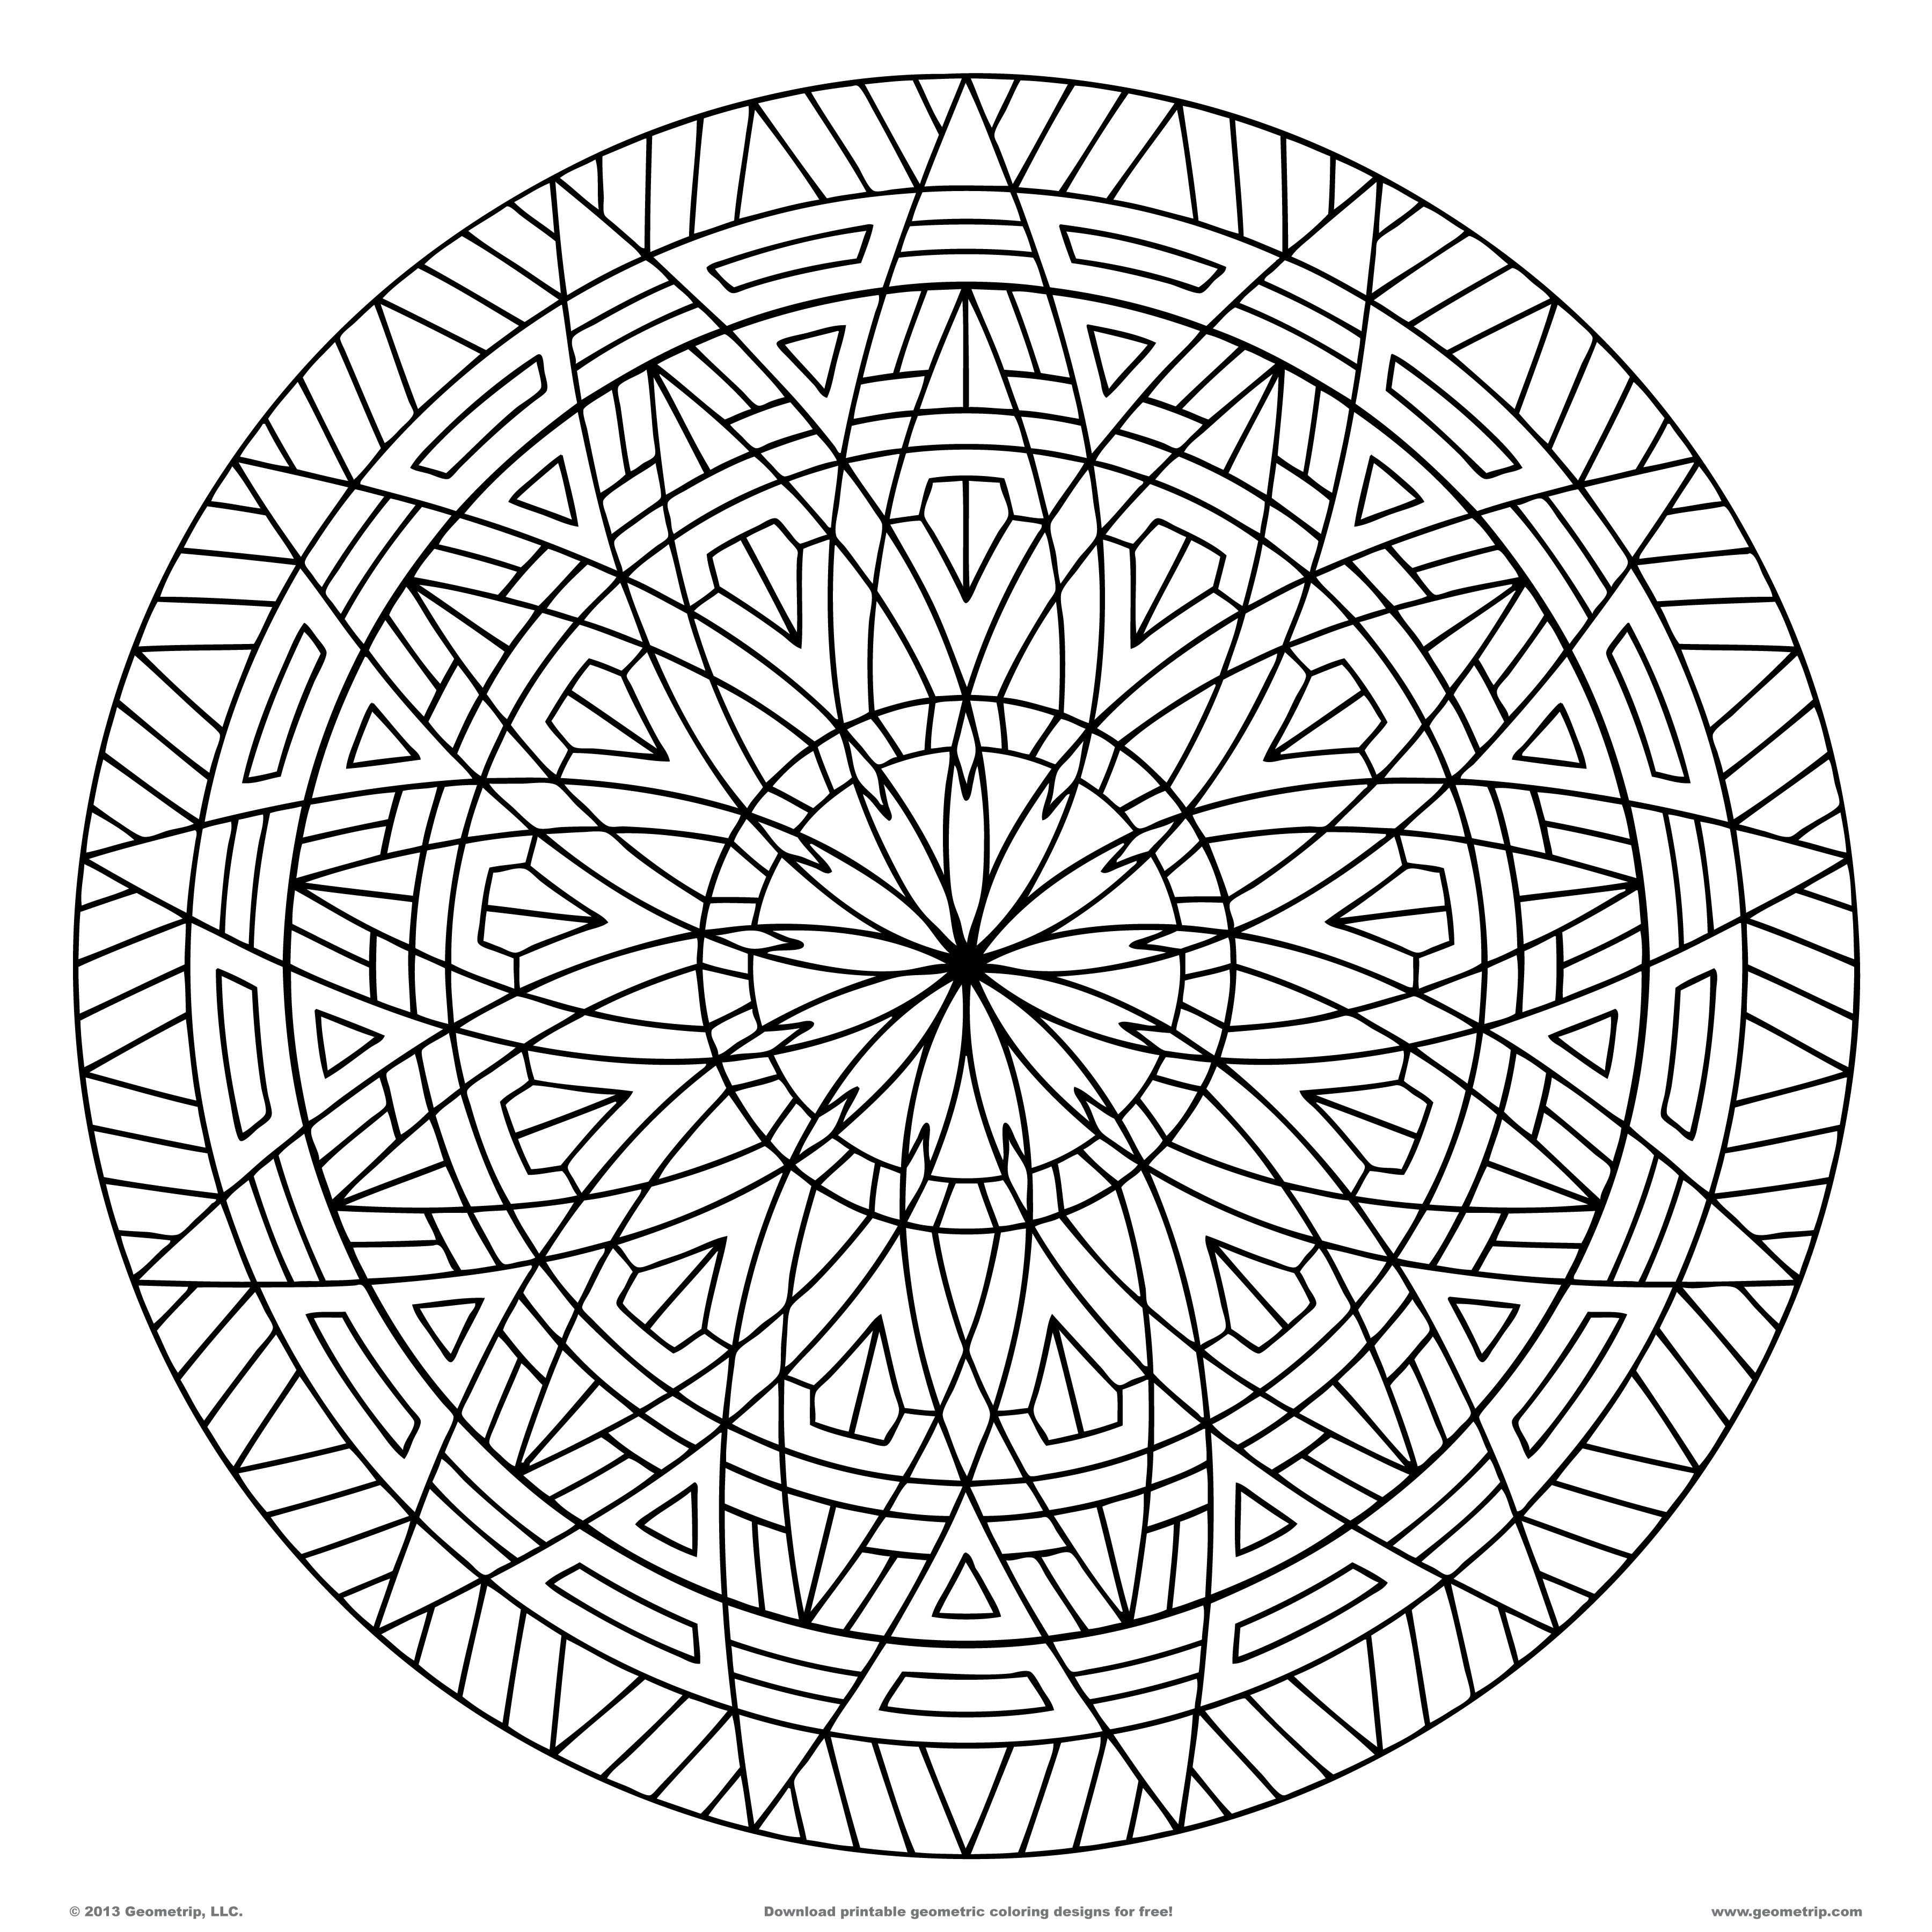 free geometric pattern coloring pages free printable geometric design coloring pages coloring home pages pattern coloring geometric free